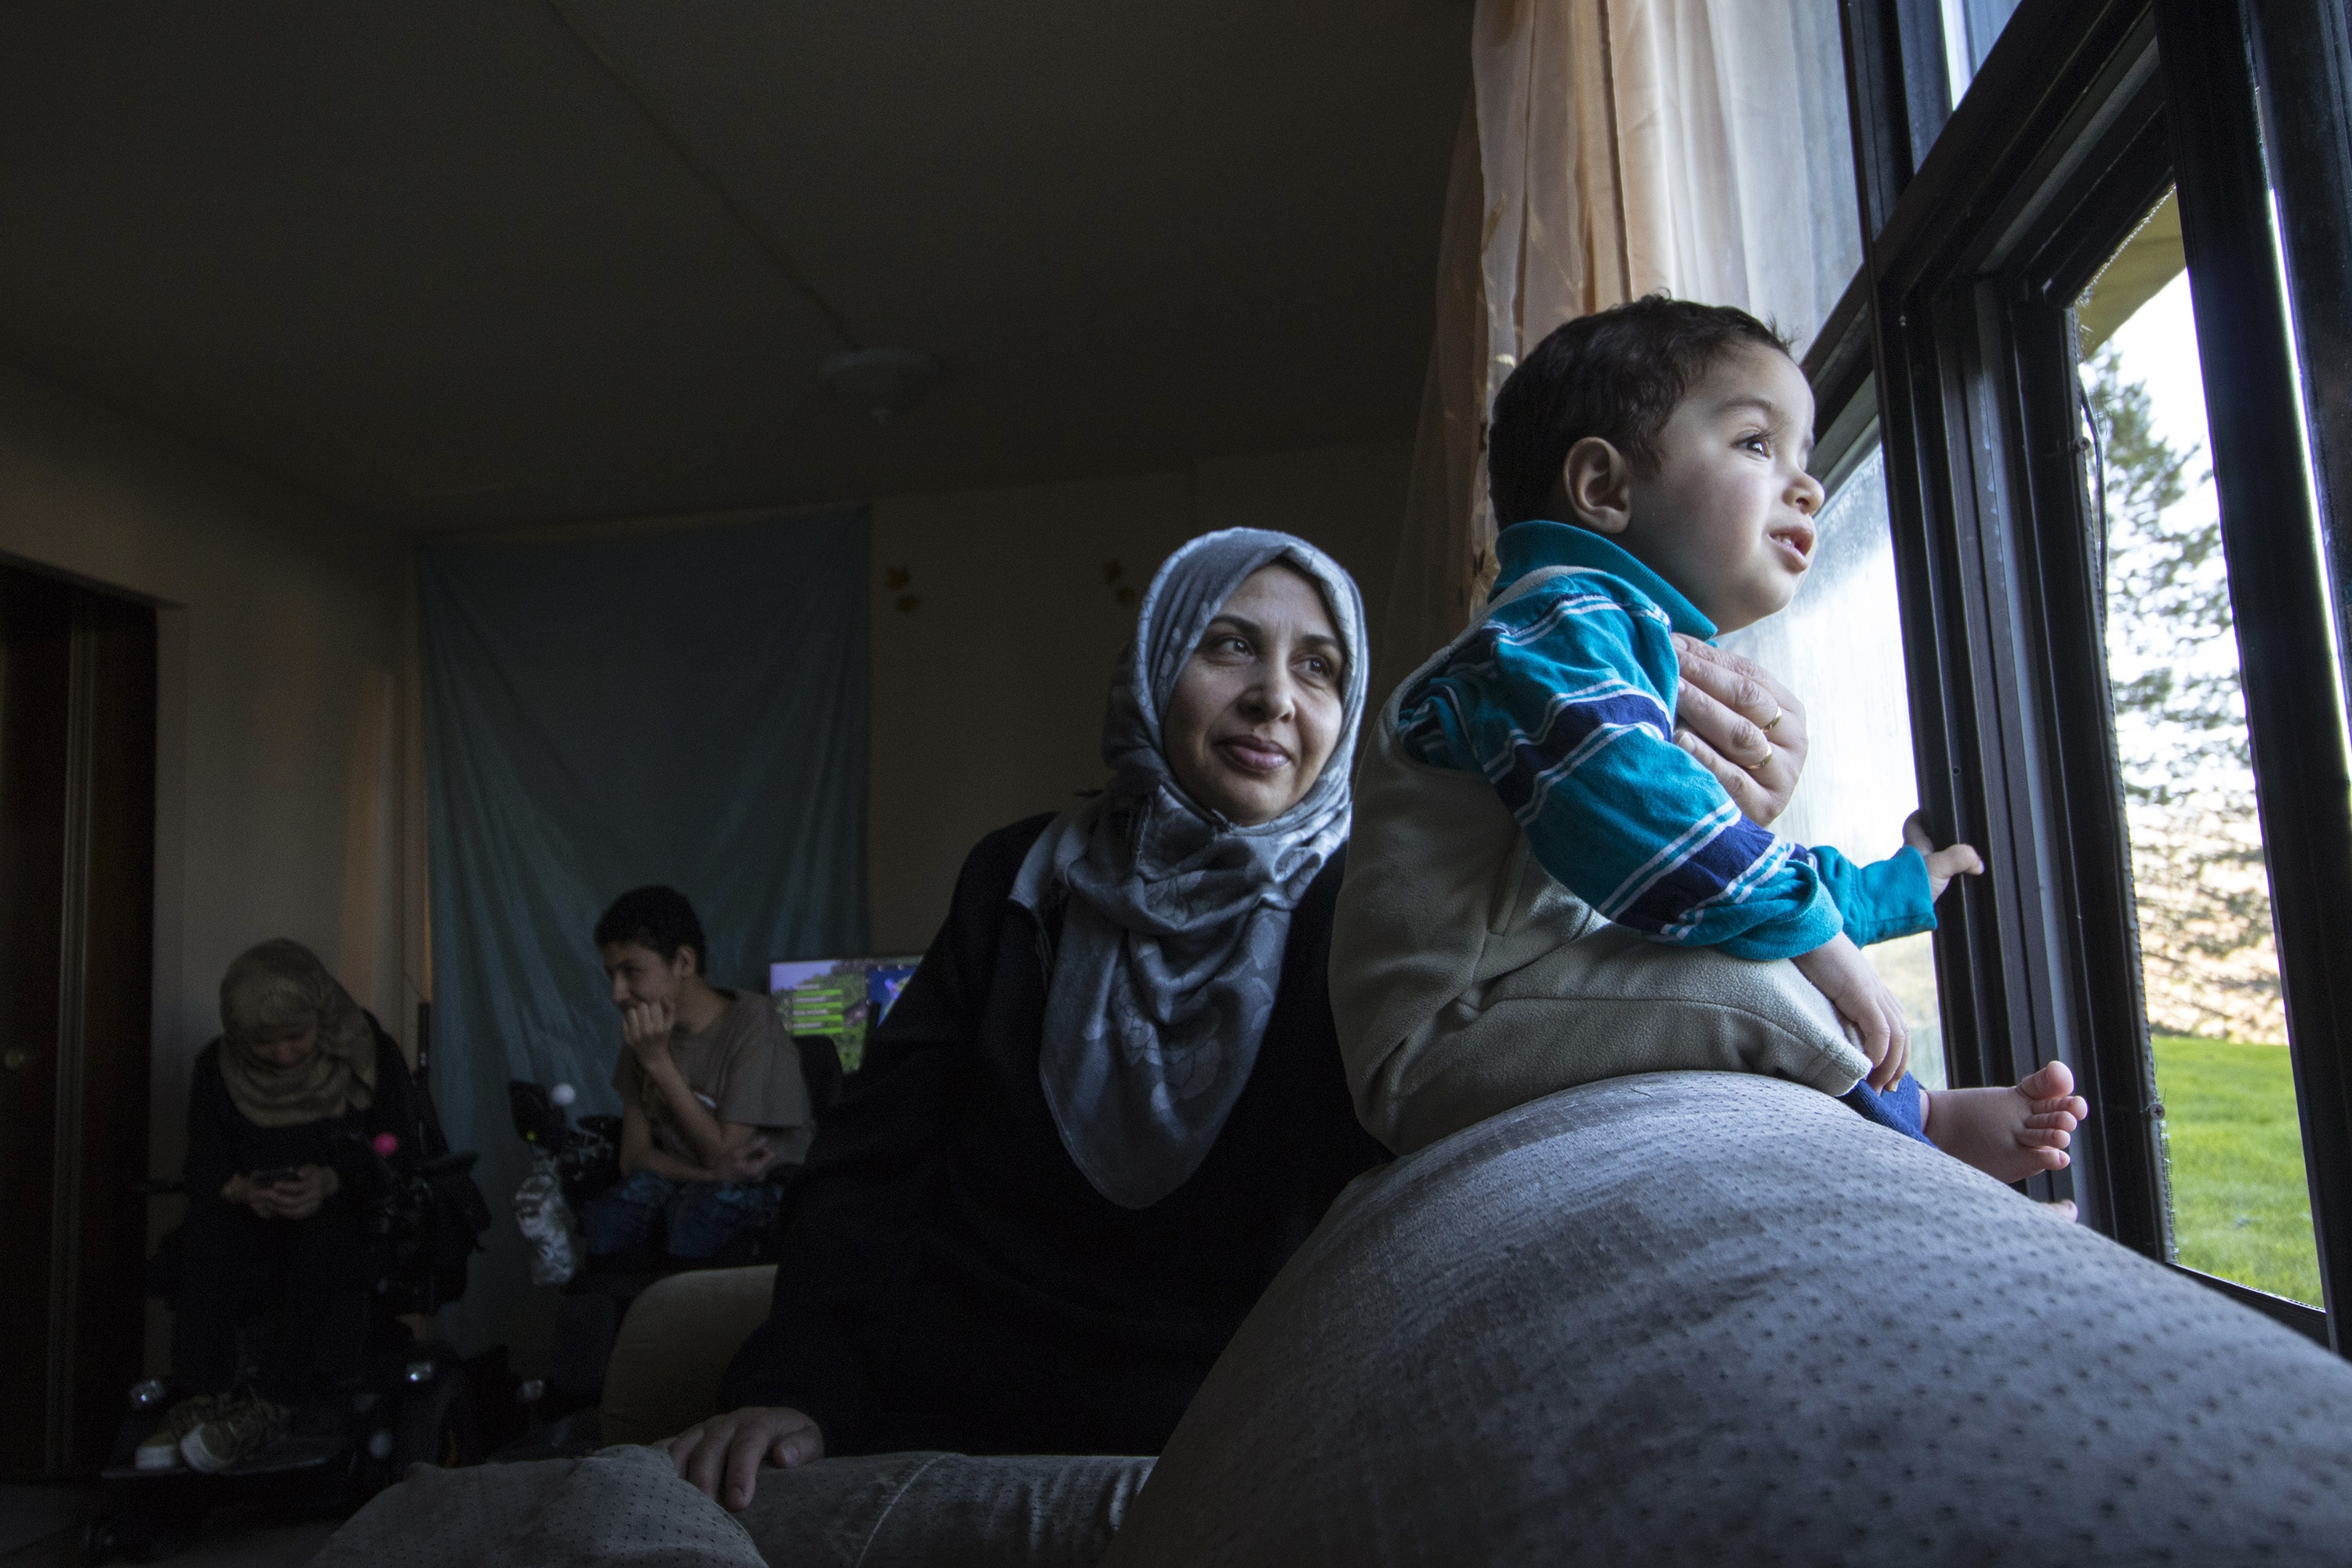 Eighteen-month-old Mias looks out the window of the family's apartment as his mother, Jawaher Aljanadi, looks on. Maher and Marwa are in the background. (Dave Irish/CBC)